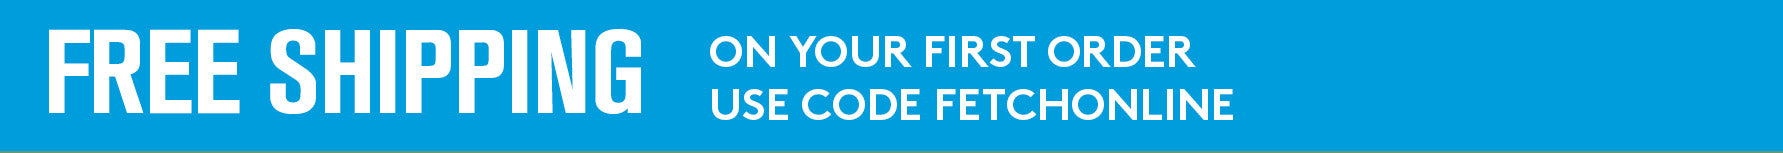 FETCHONLINE is for online use only. Receive free shipping on your first online purchase